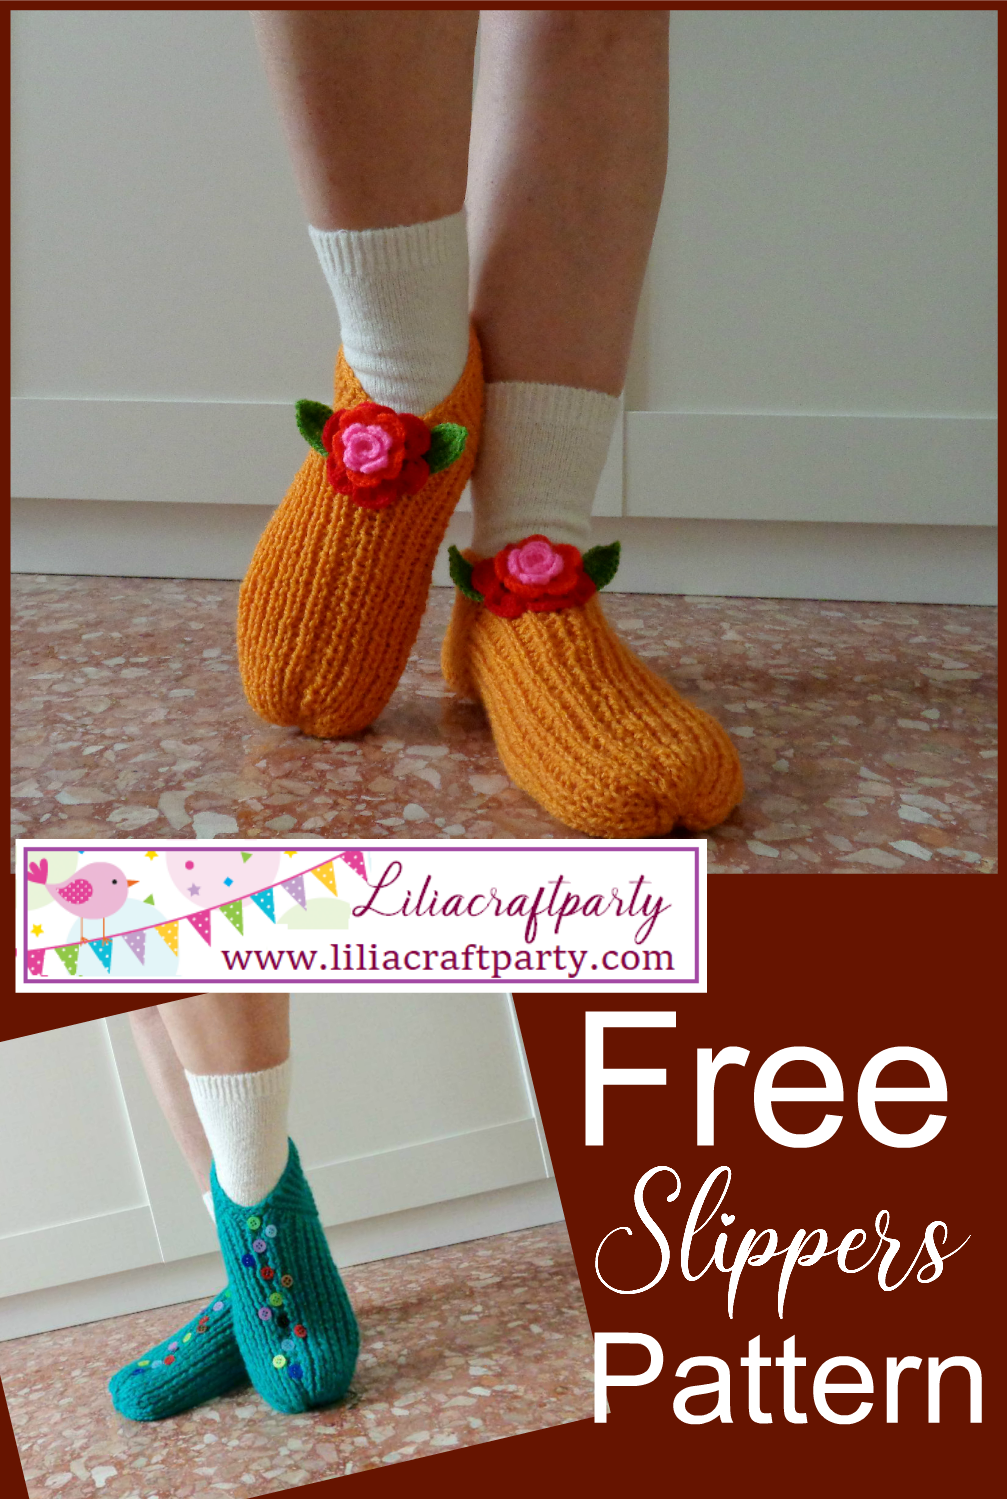 Lucilu Slippers Shoes free crochet pattern cozy slippers for winter easy to knit perfect project for all knitters beginners